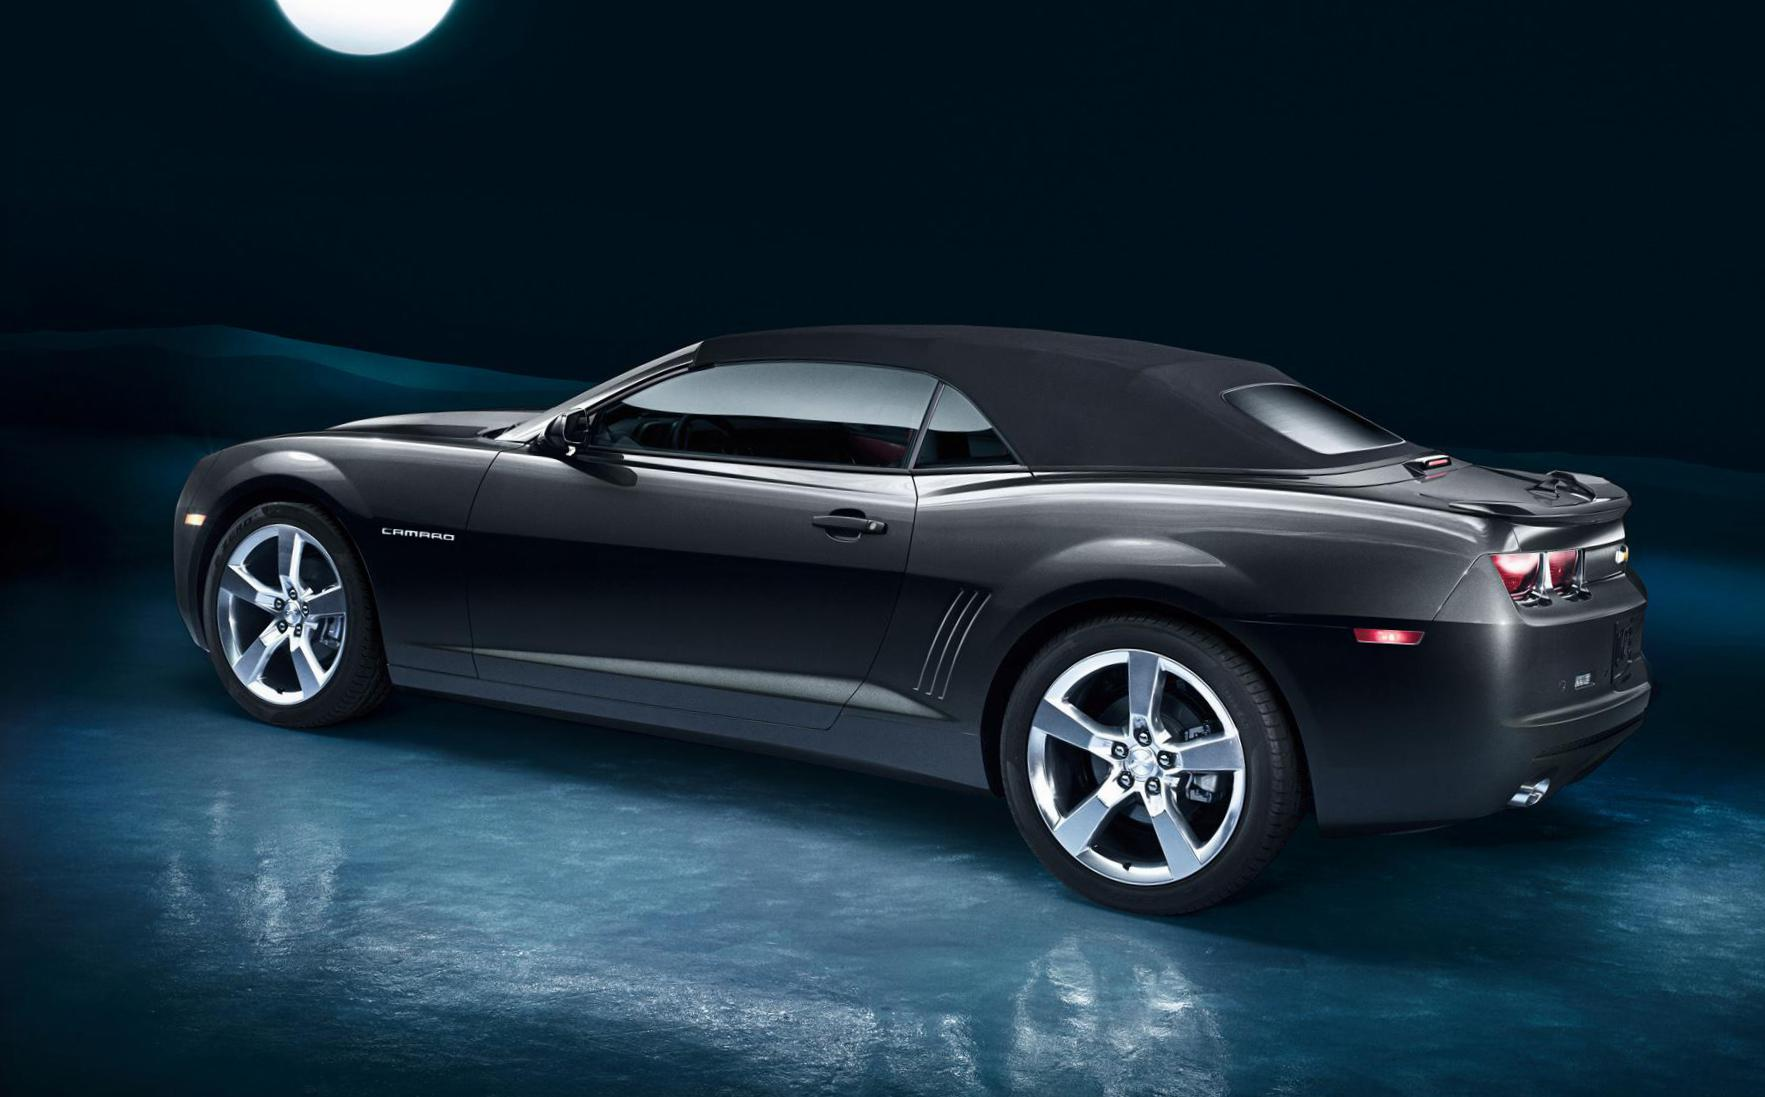 Chevrolet Camaro Convertible models sedan